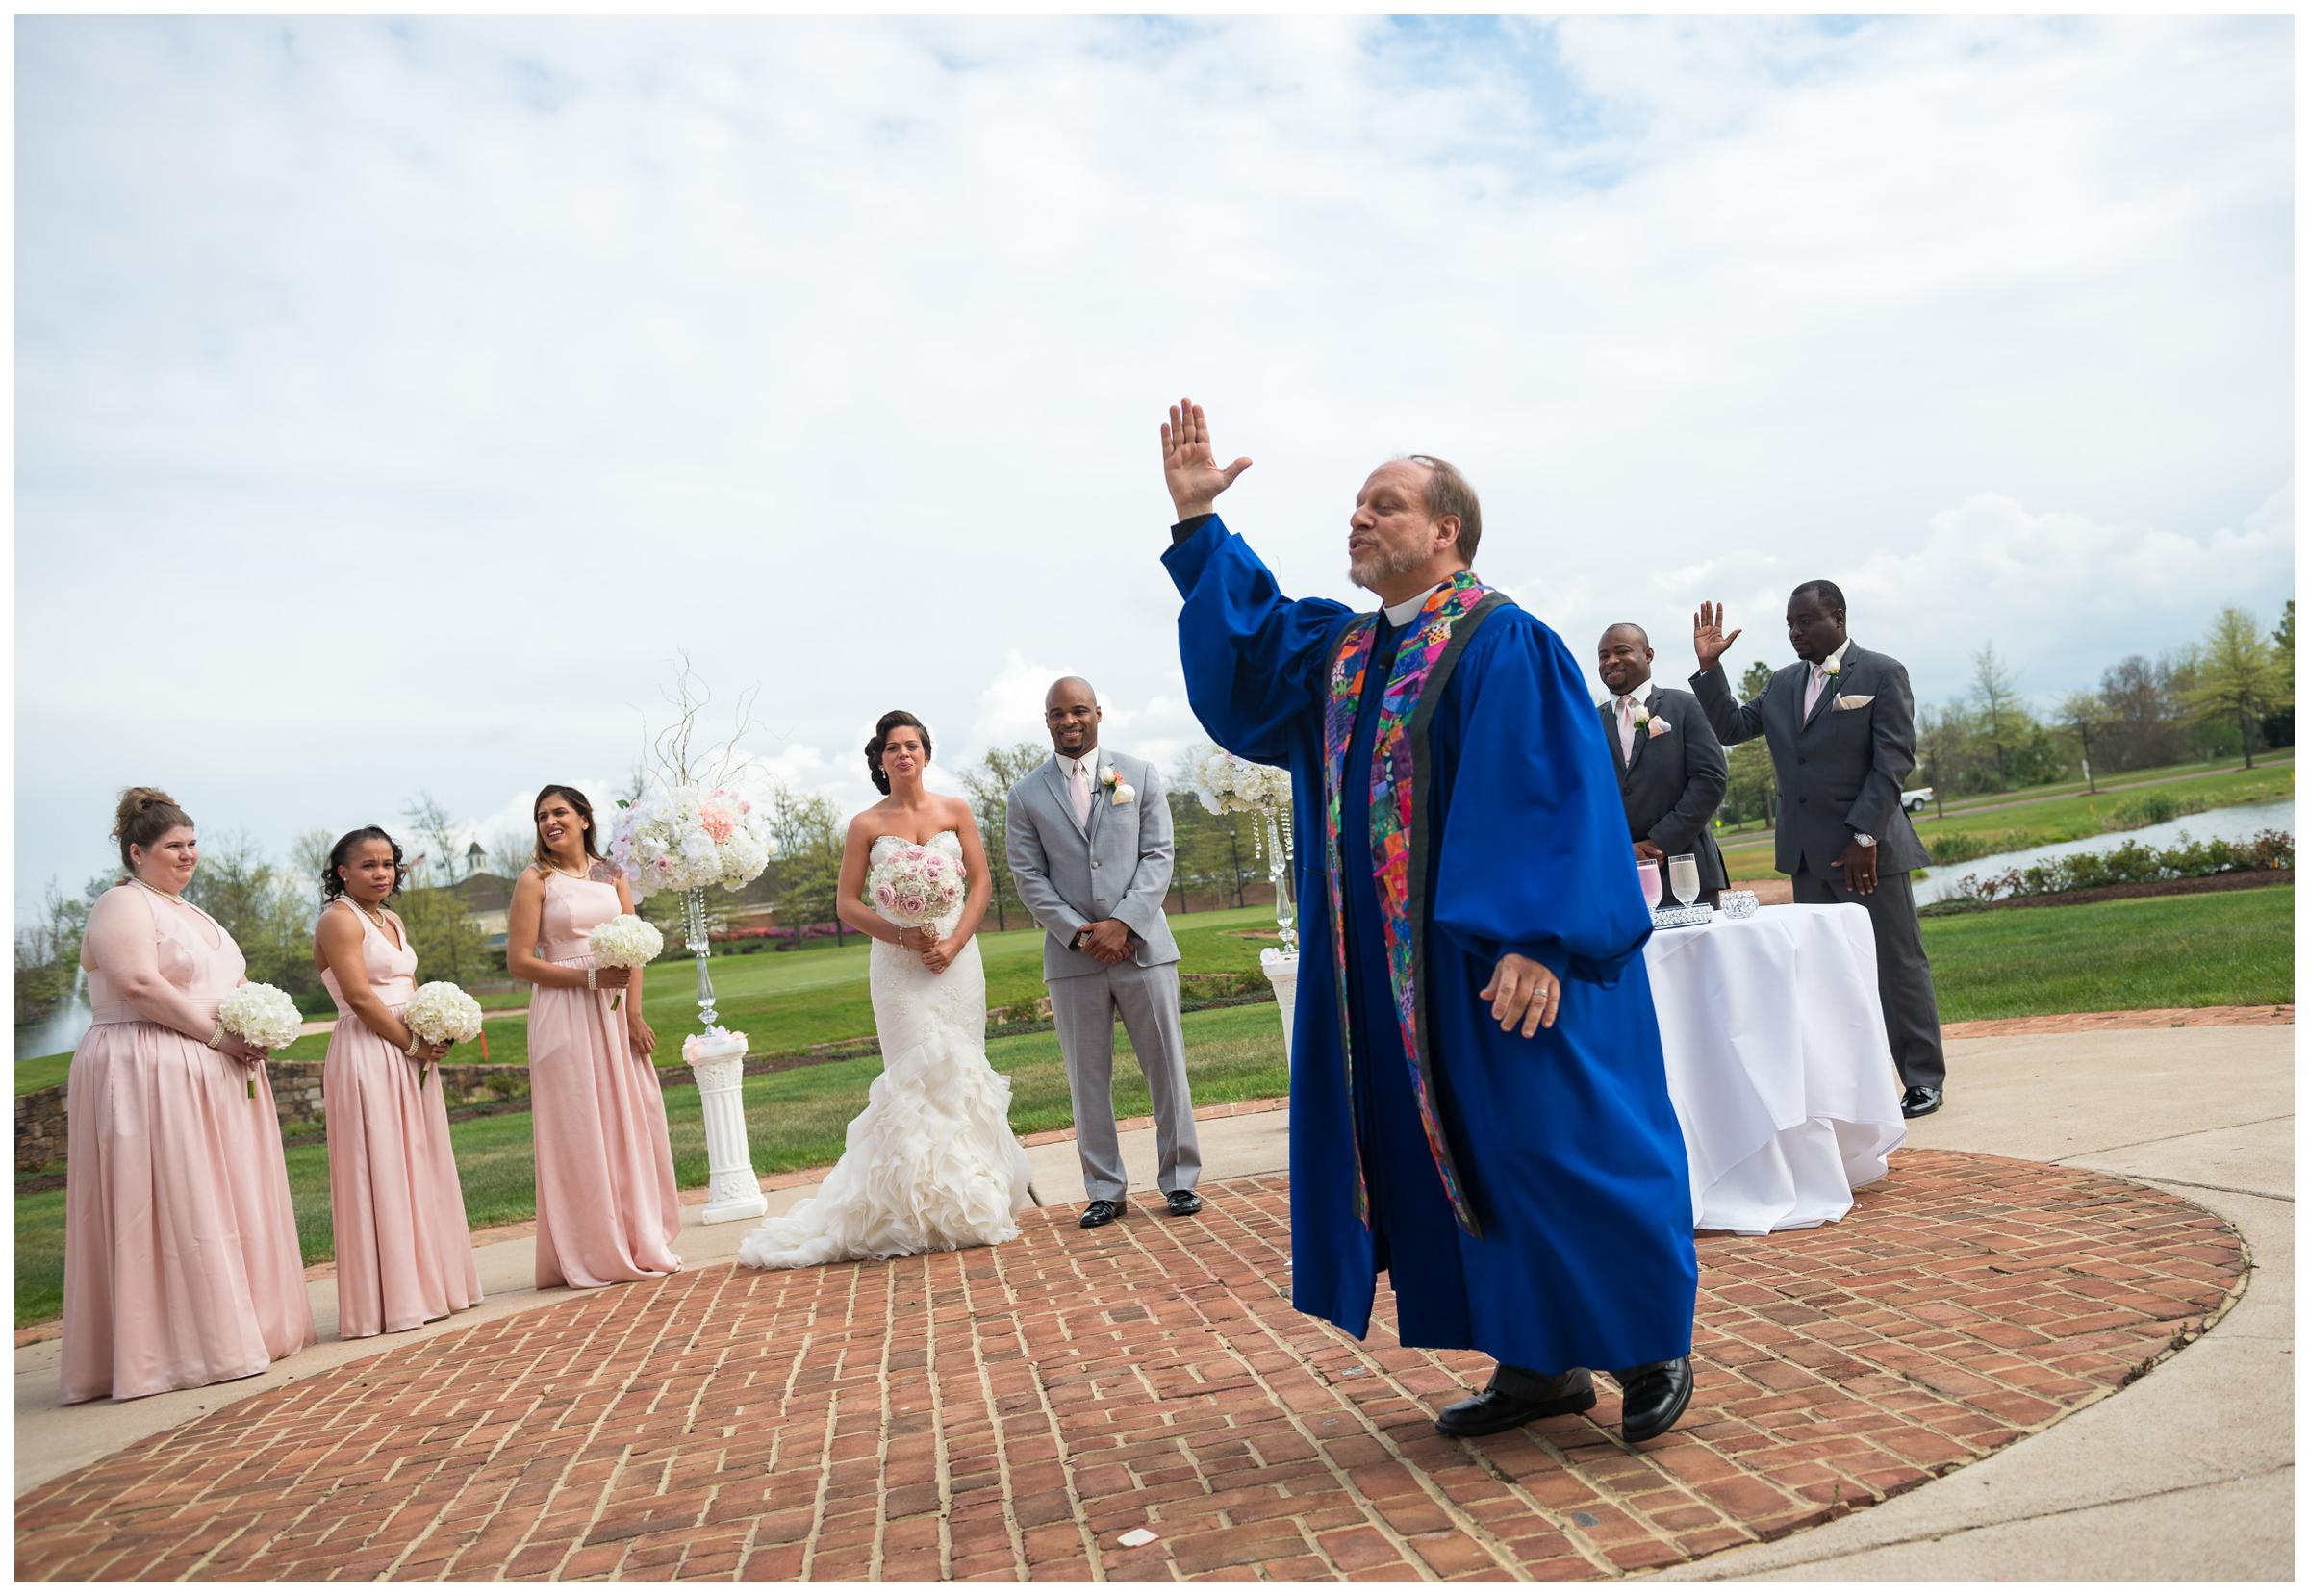 officiant during wedding ceremony